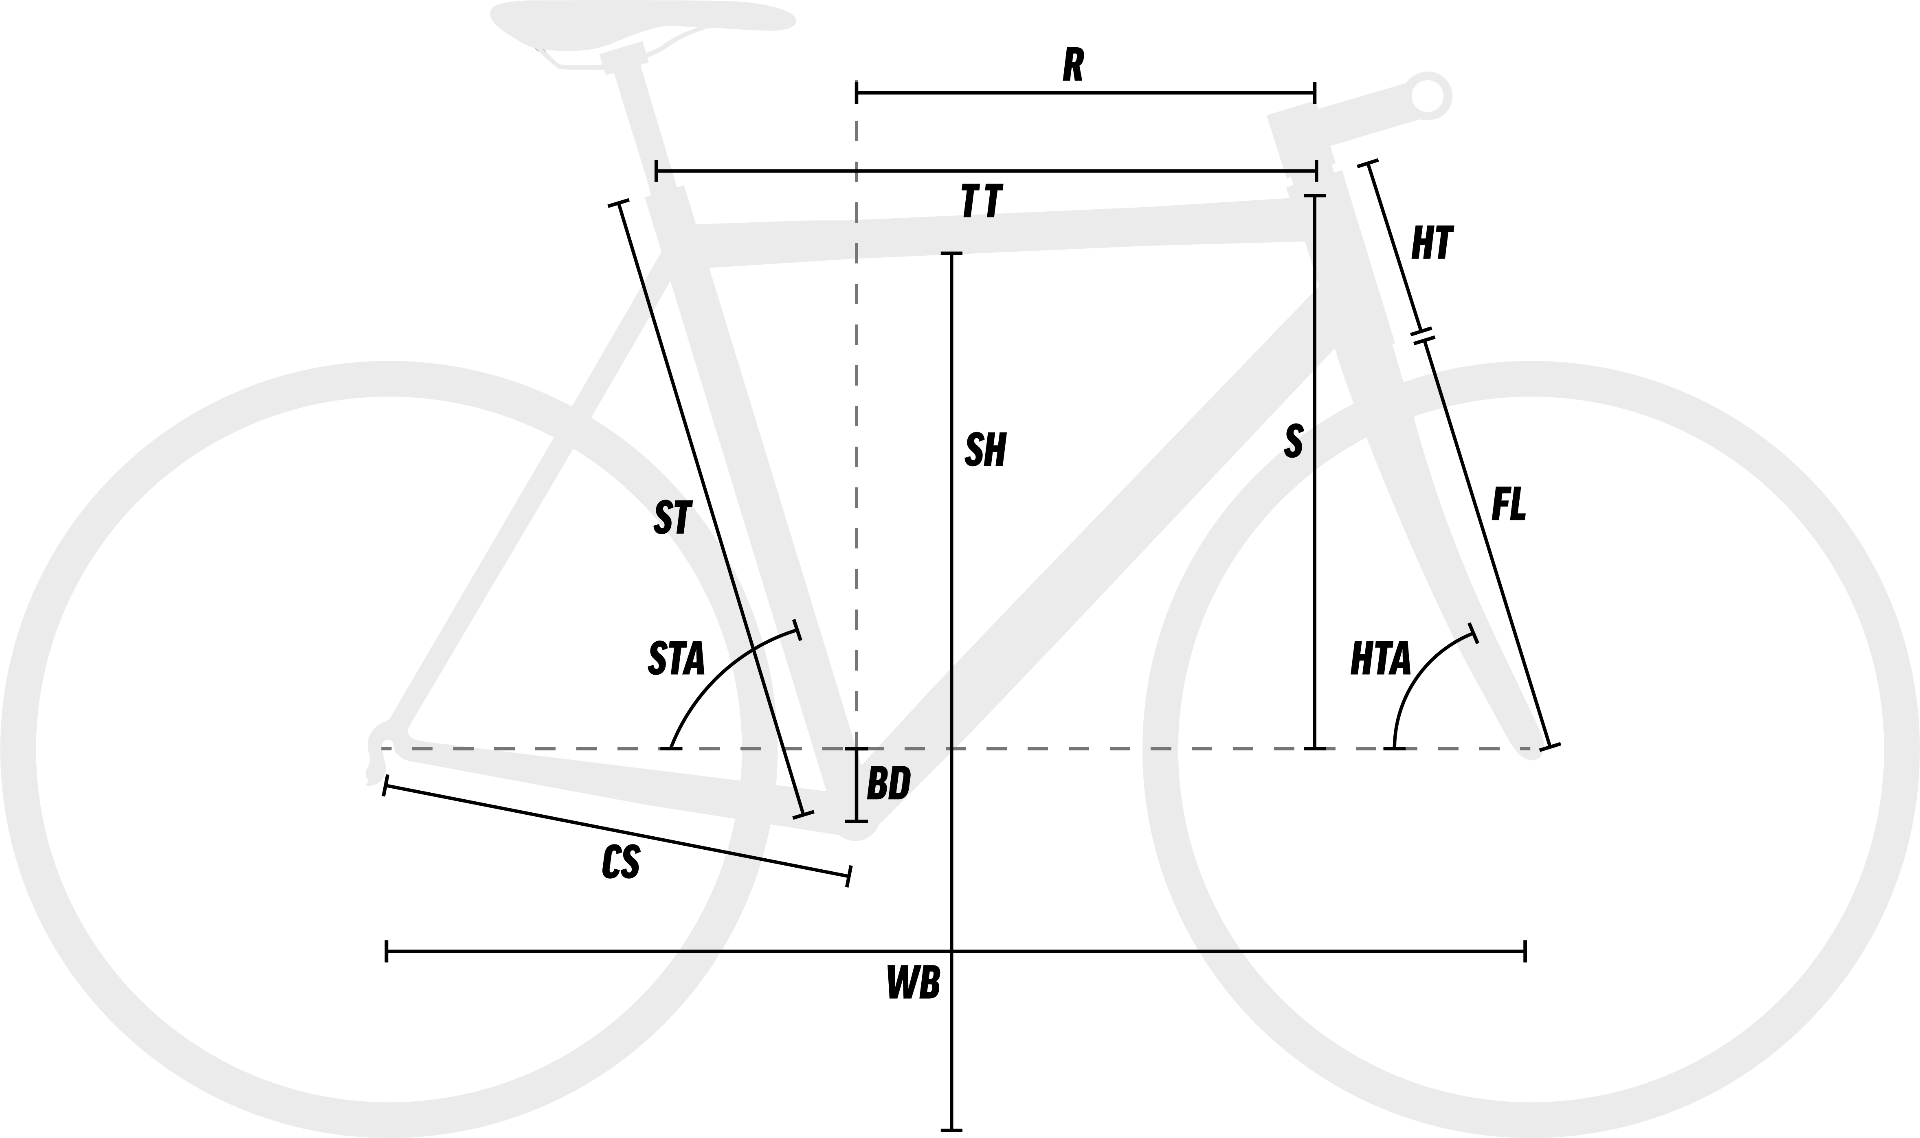 Flat Bar Road Bike Geometry Diagram